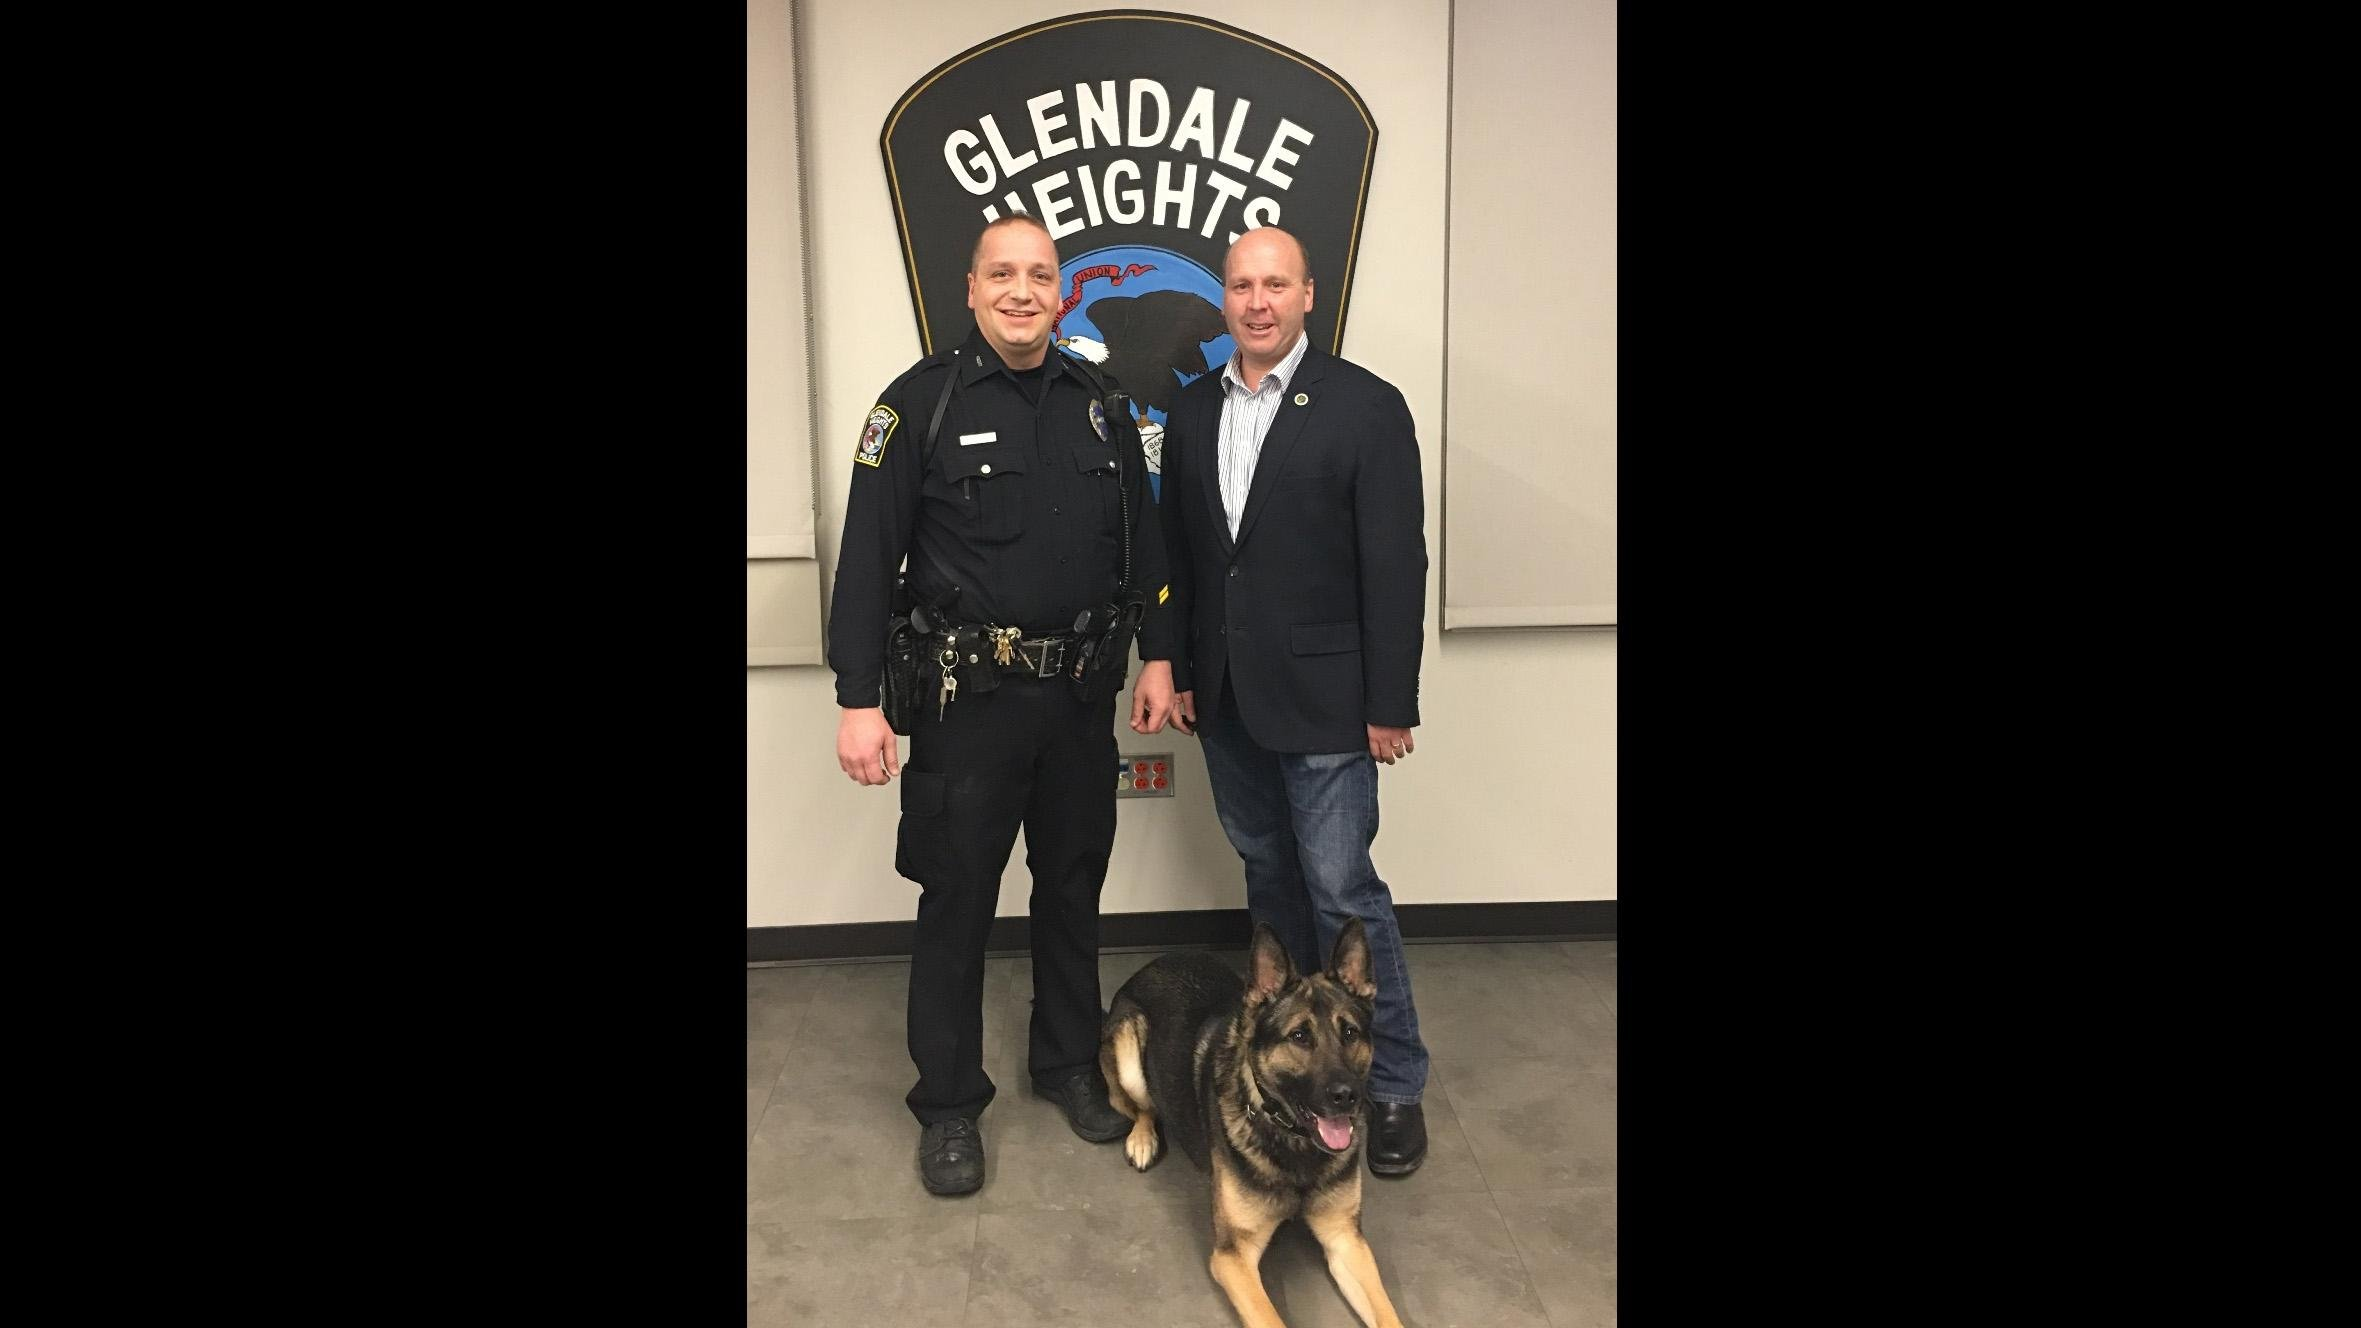 State Sen. Tom Cullerton, right, poses with Glendale Heights Police Officer Mike Huff and K9 Officer Orkan. (State Sen. Tom Cullerton)